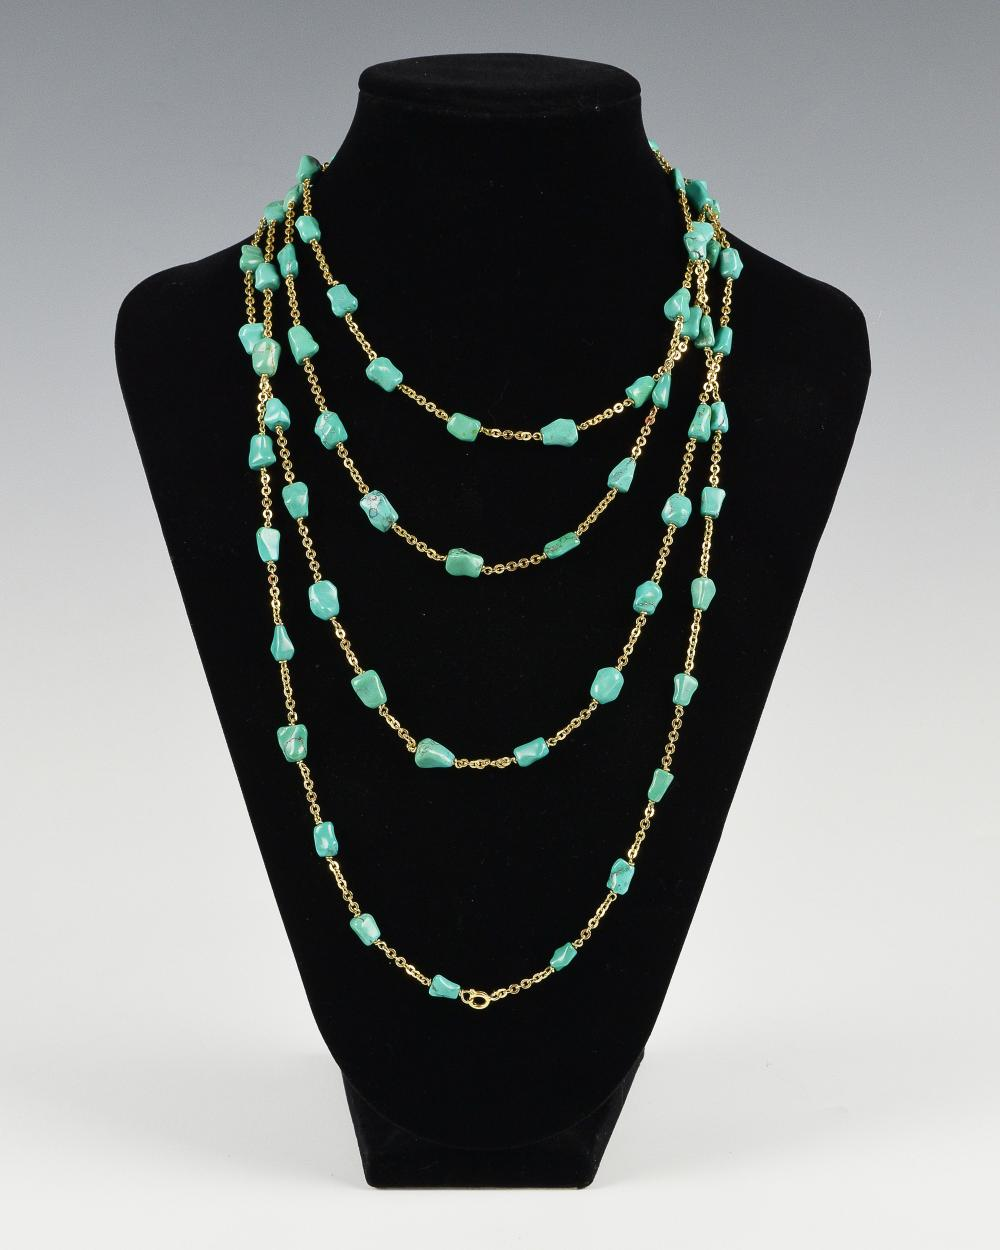 Lot 951: CHINESE BEADED TURQUOISE NECKLACE, 19TH-20TH CENTURY